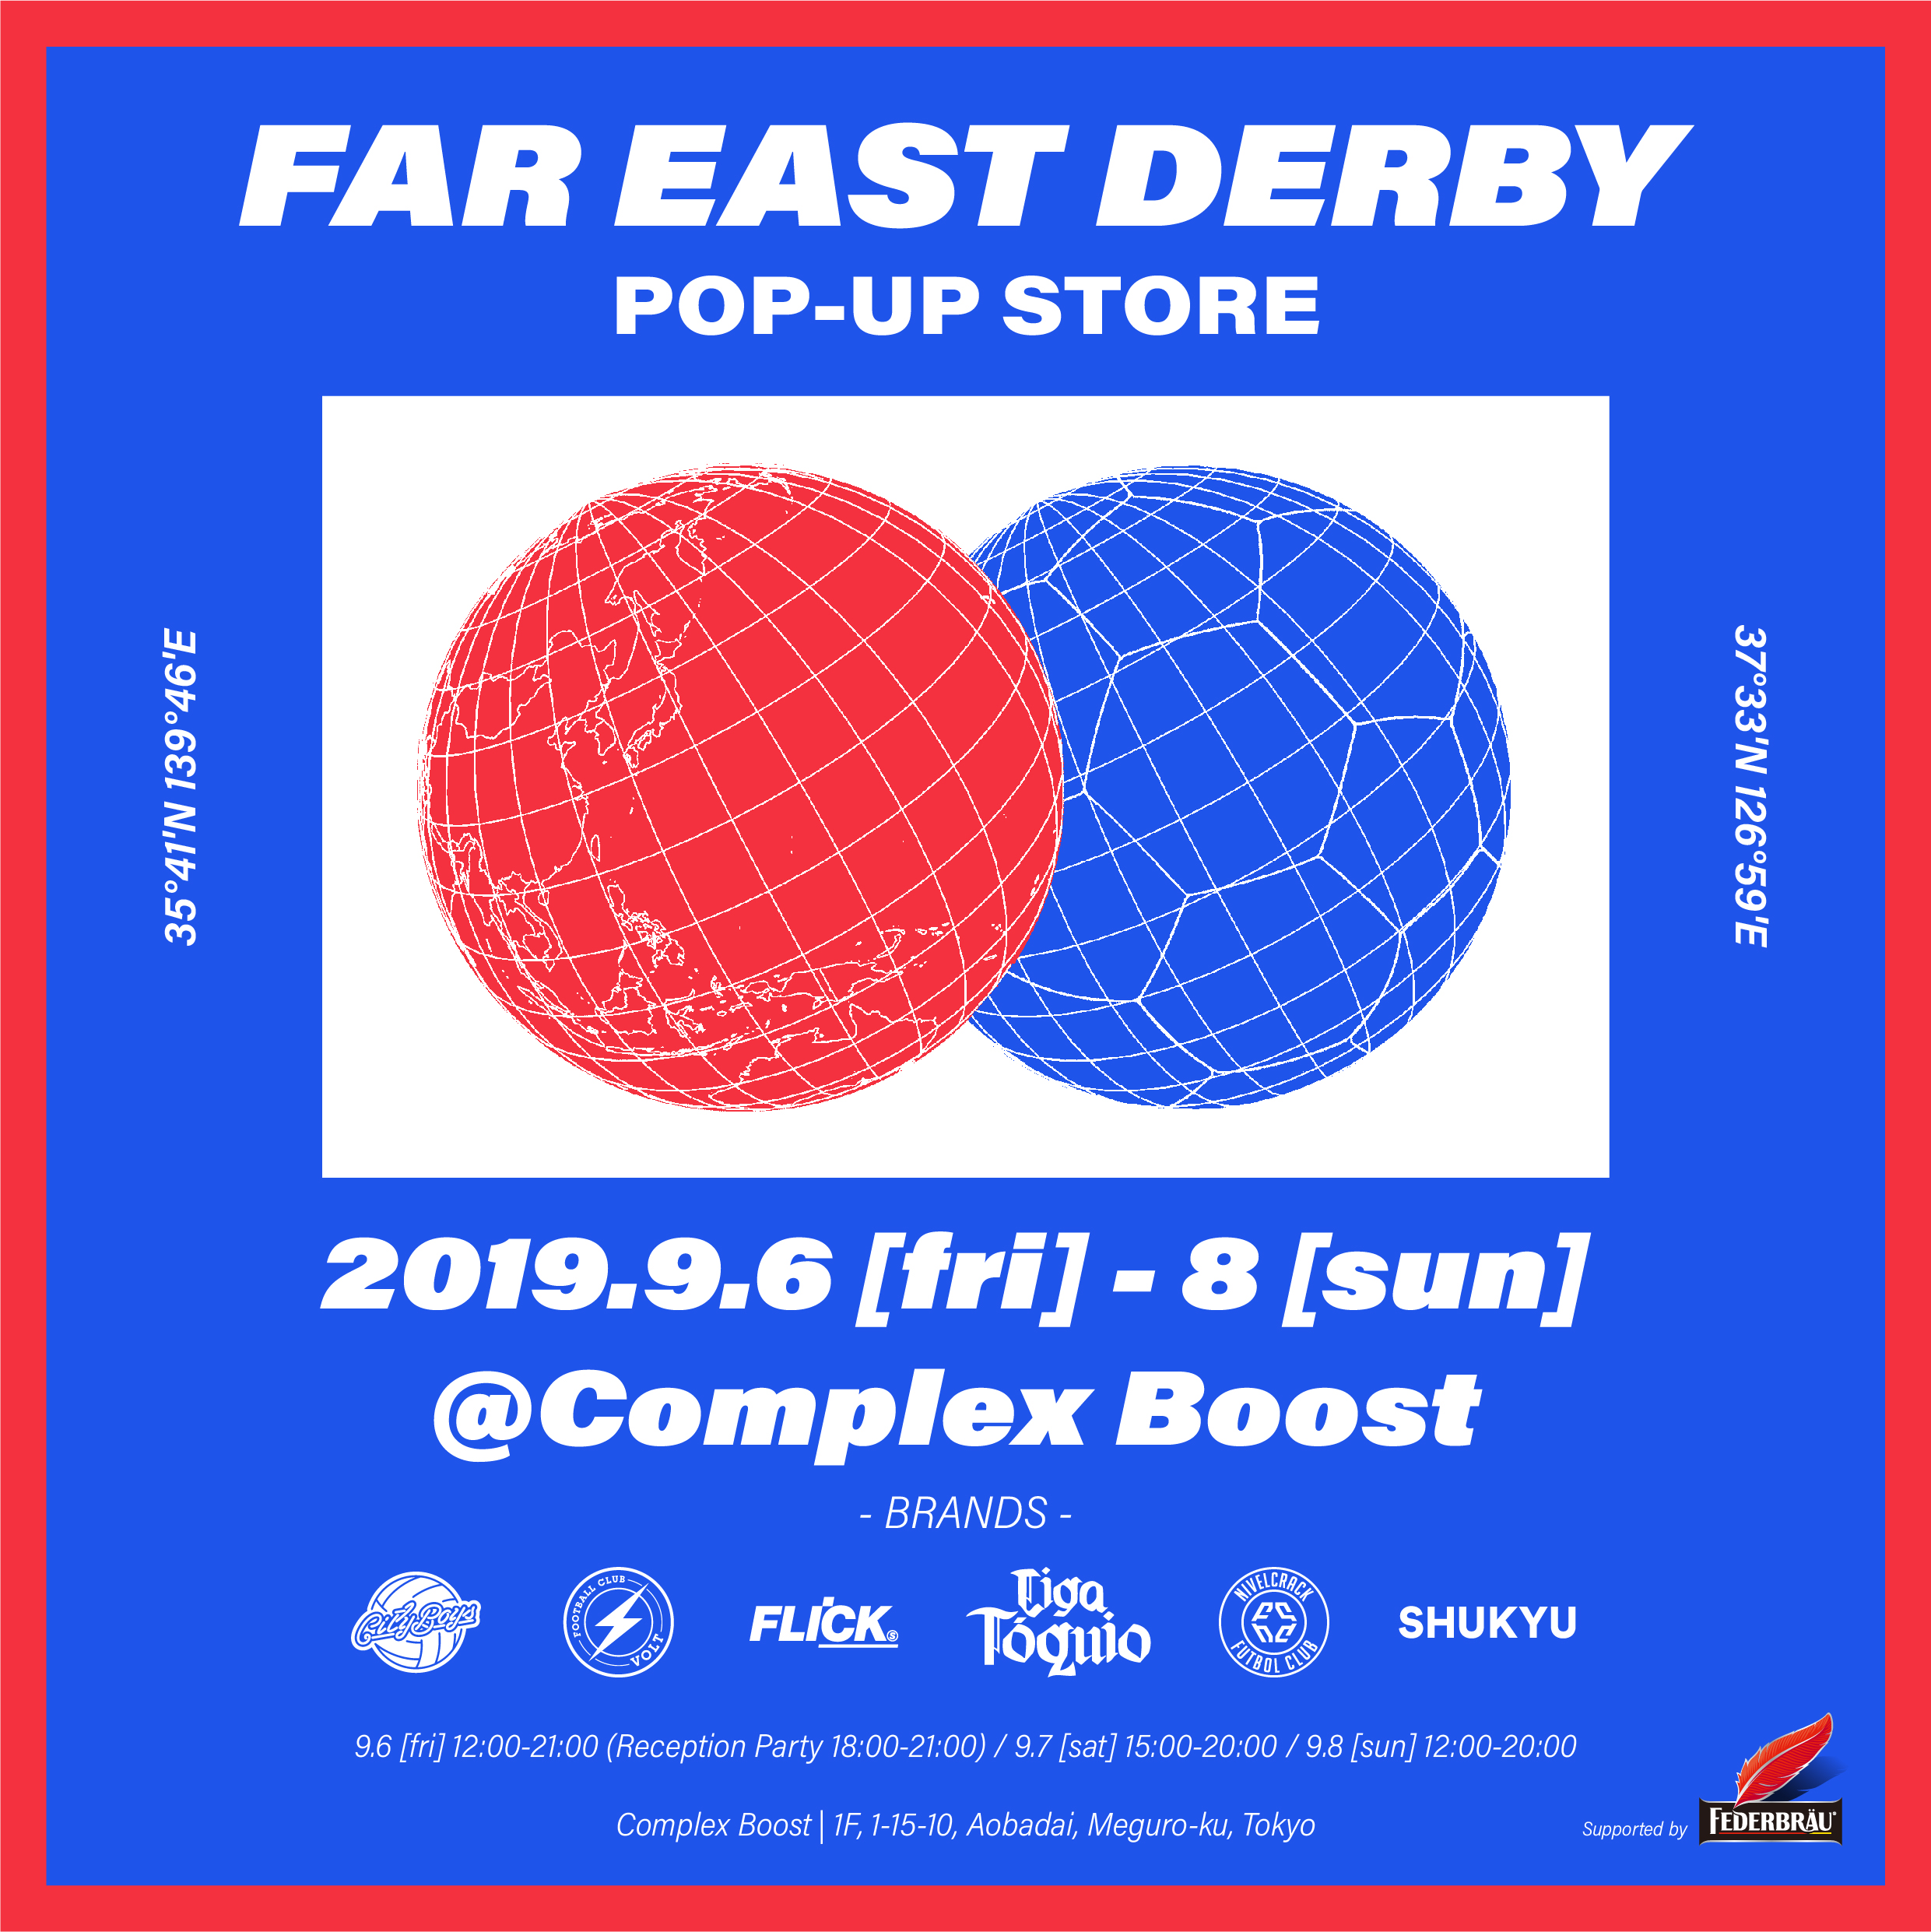 FAR EAST DERBY POP-UP STORE